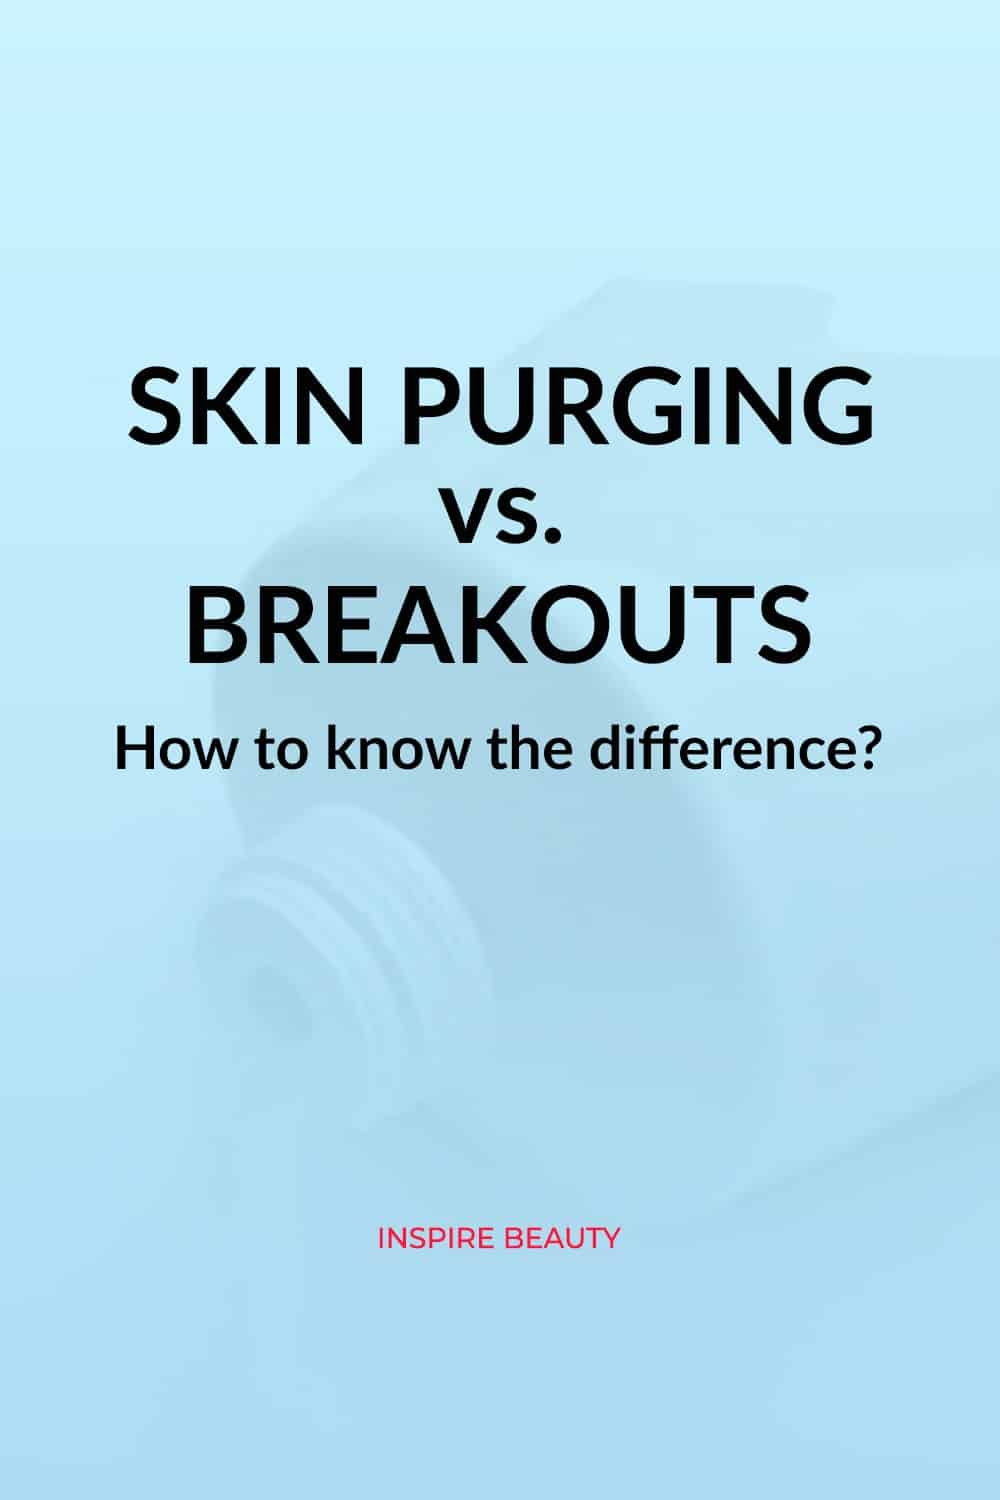 Find out the difference between skin purging and breakout.